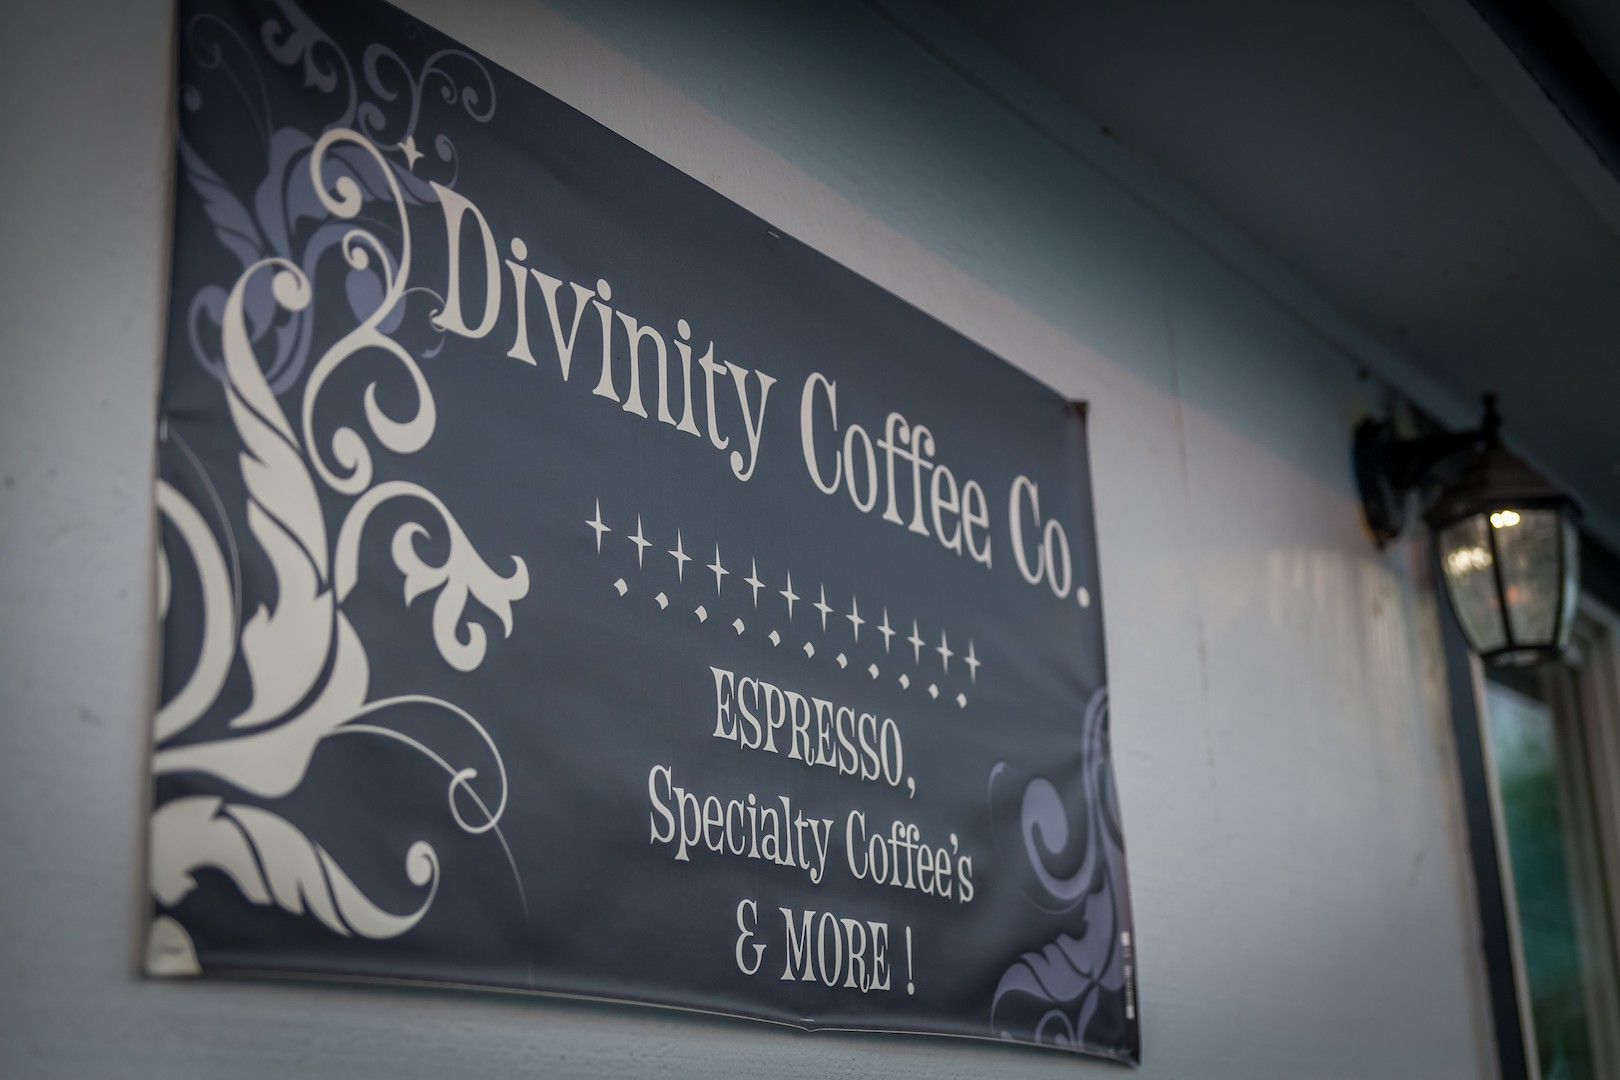 DIVINITY COFFEE CO.